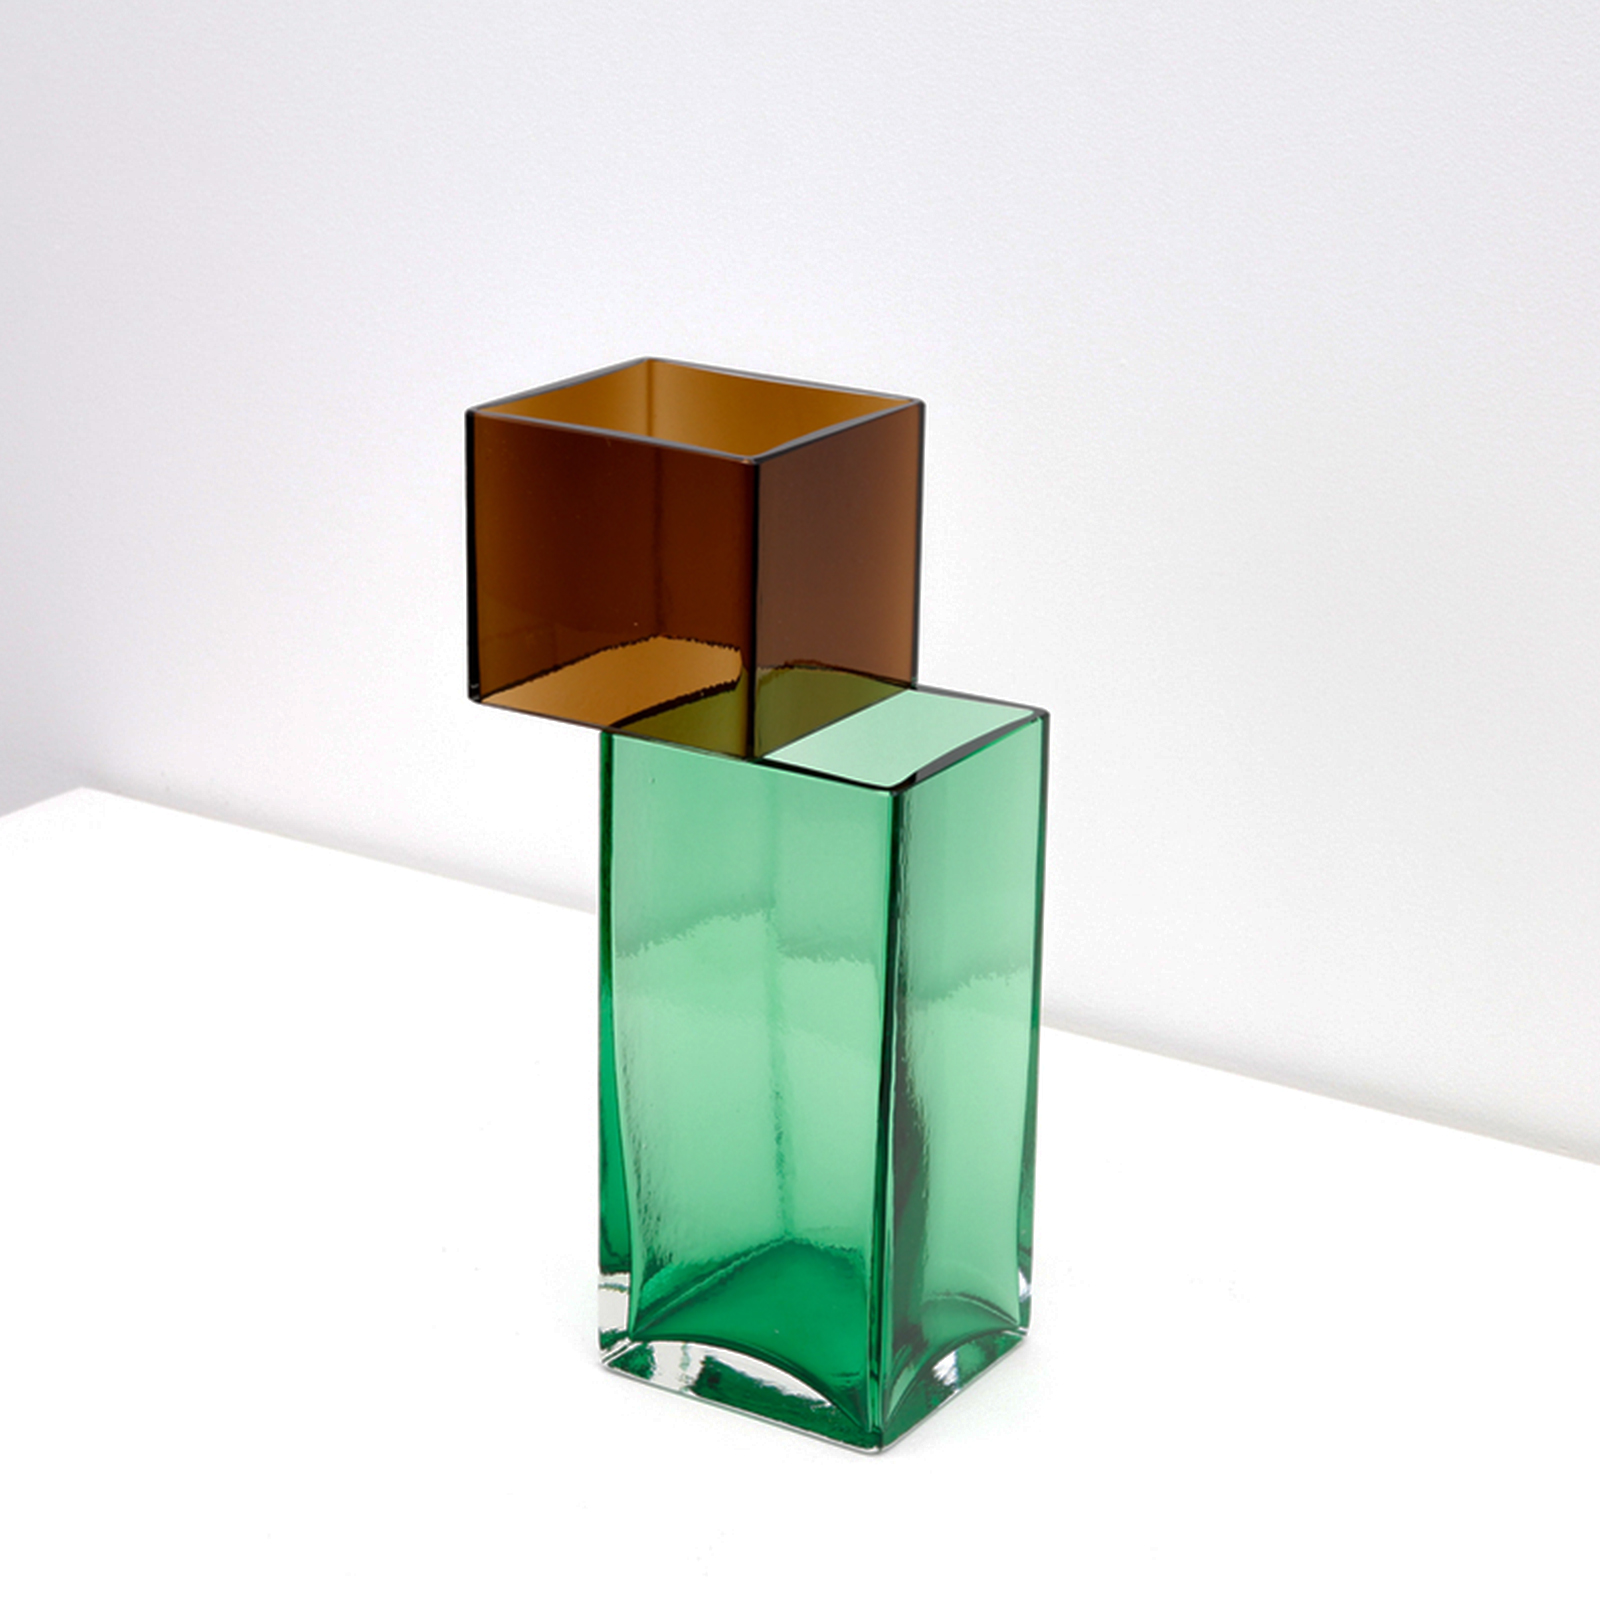 Graft Vase A2 In Tobacco And Green Hand Blown Glass By Liam Fleming 2